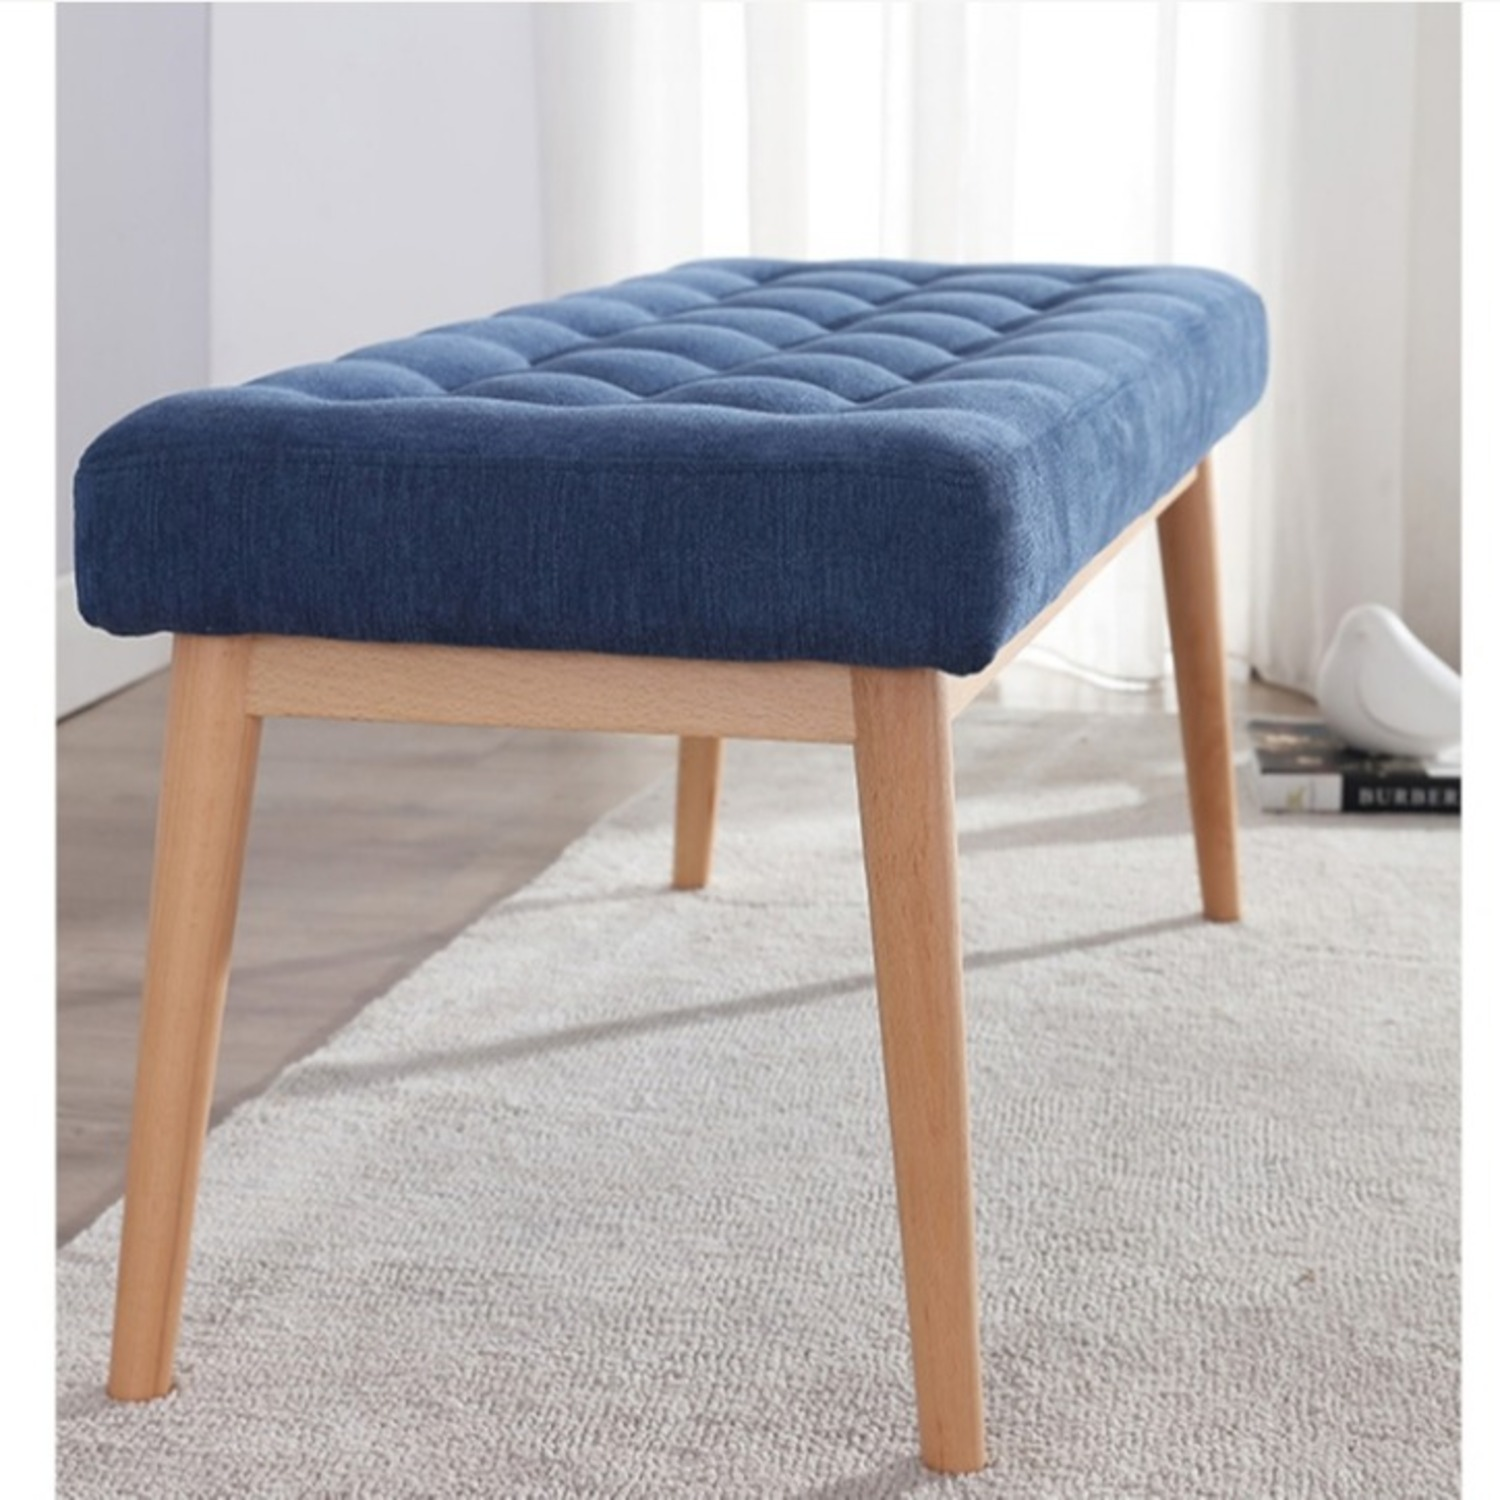 Bench In Blue Cotton Crafted W/ Beech Wood Base - image-2